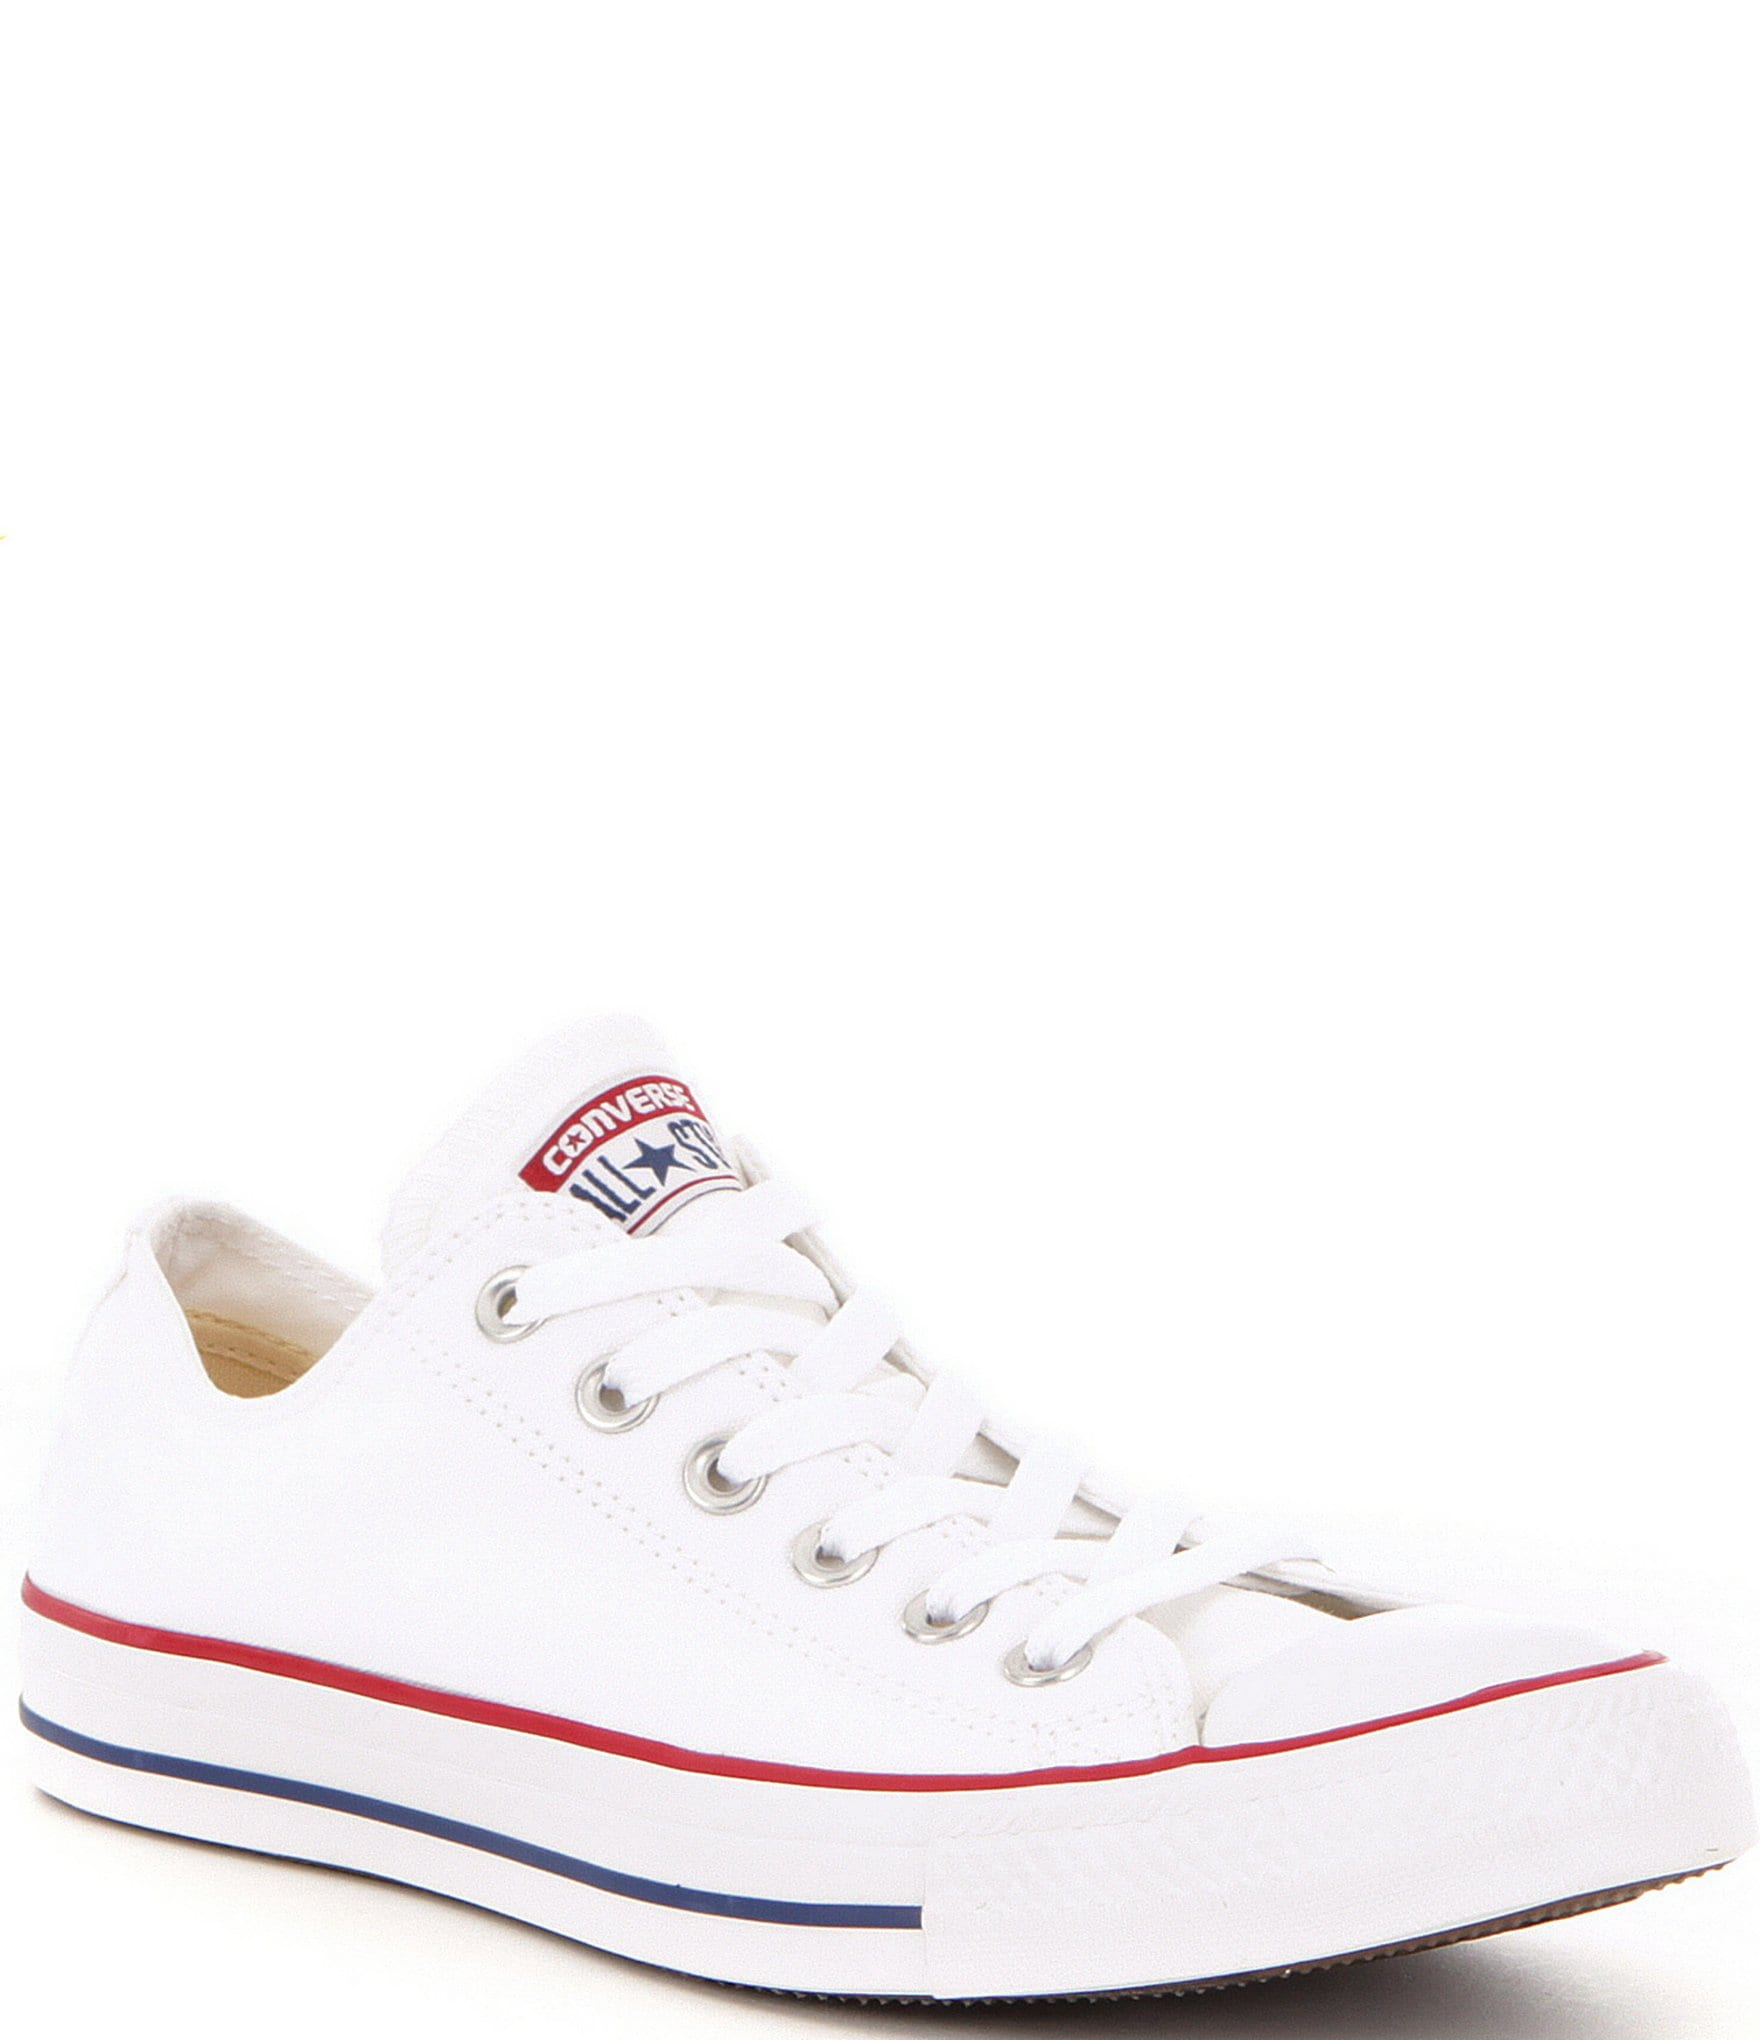 Converse All Star Designer Shoes, One Star Pearl Satin Flatform Sneakers